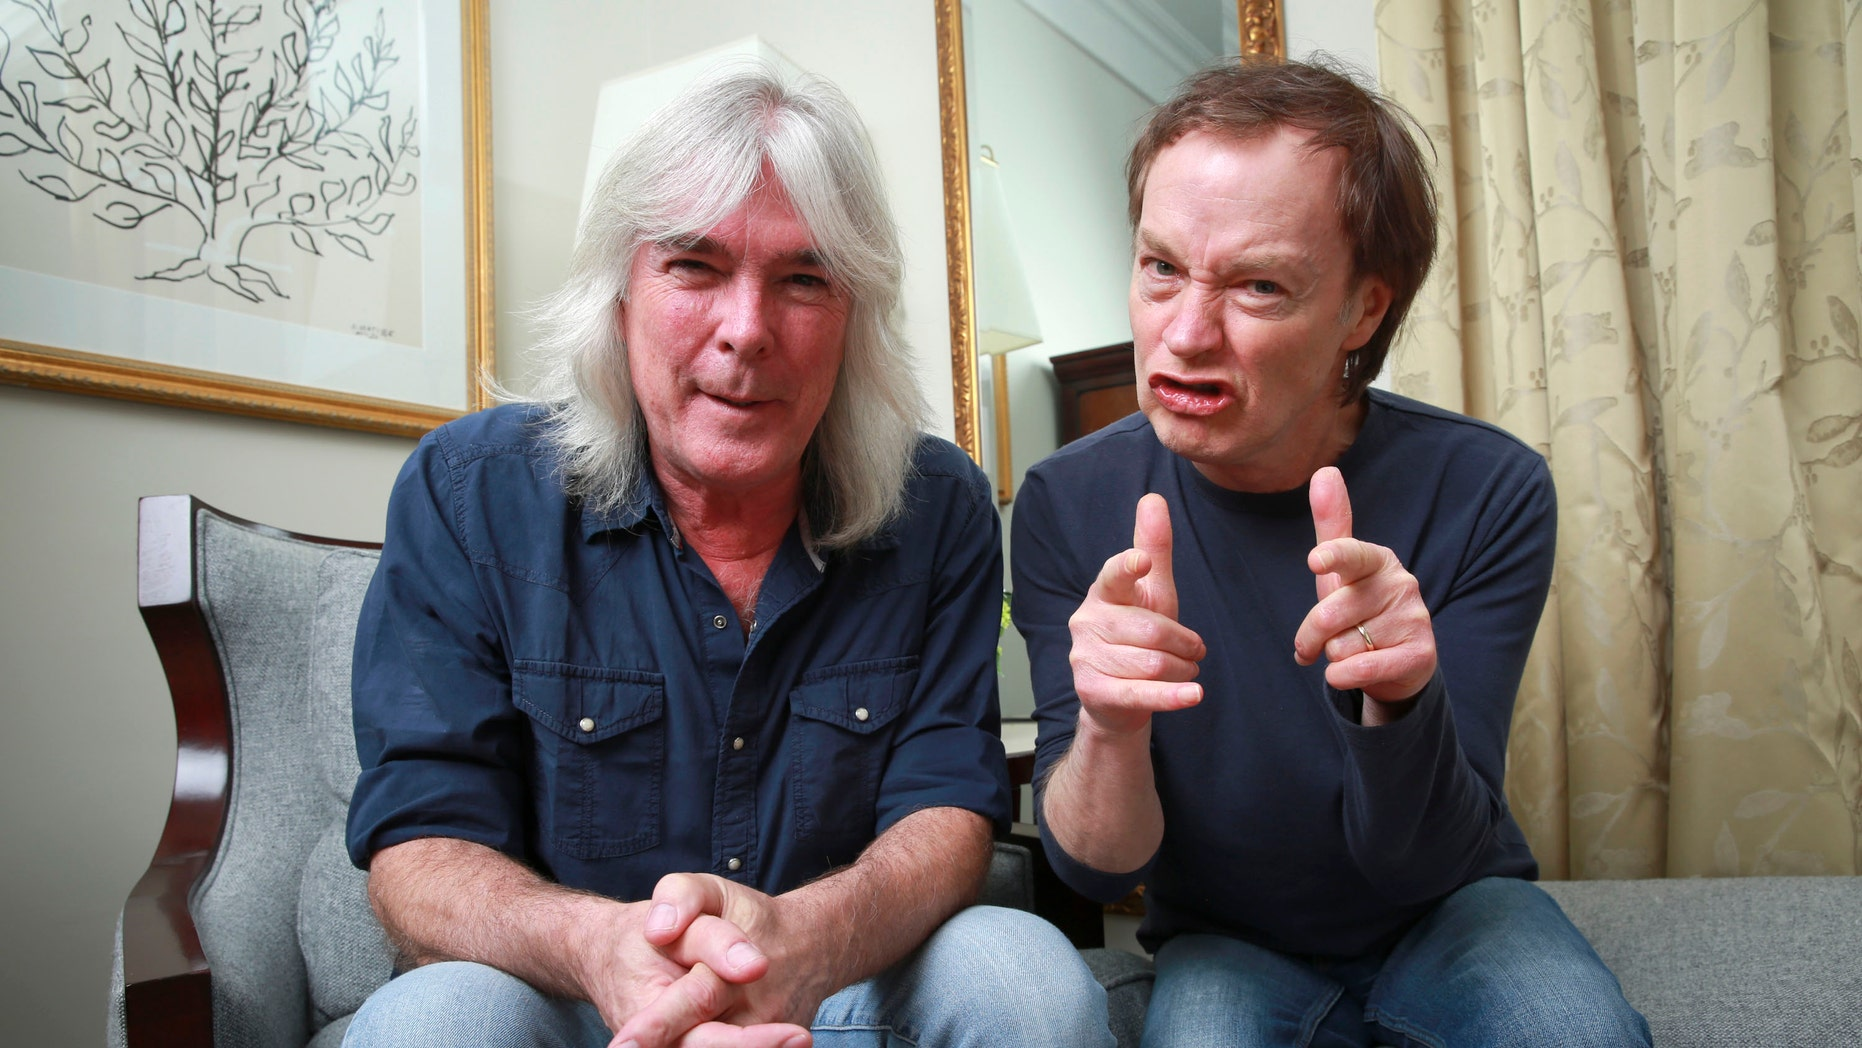 """In this Nov. 13, 2014 file photo, members of the rock band AC/DC, bassist Cliff Williams, left, and guitarist Angus Young pose for a portrait in promotion of their upcoming album, """"Rock or Bust"""" in New York."""